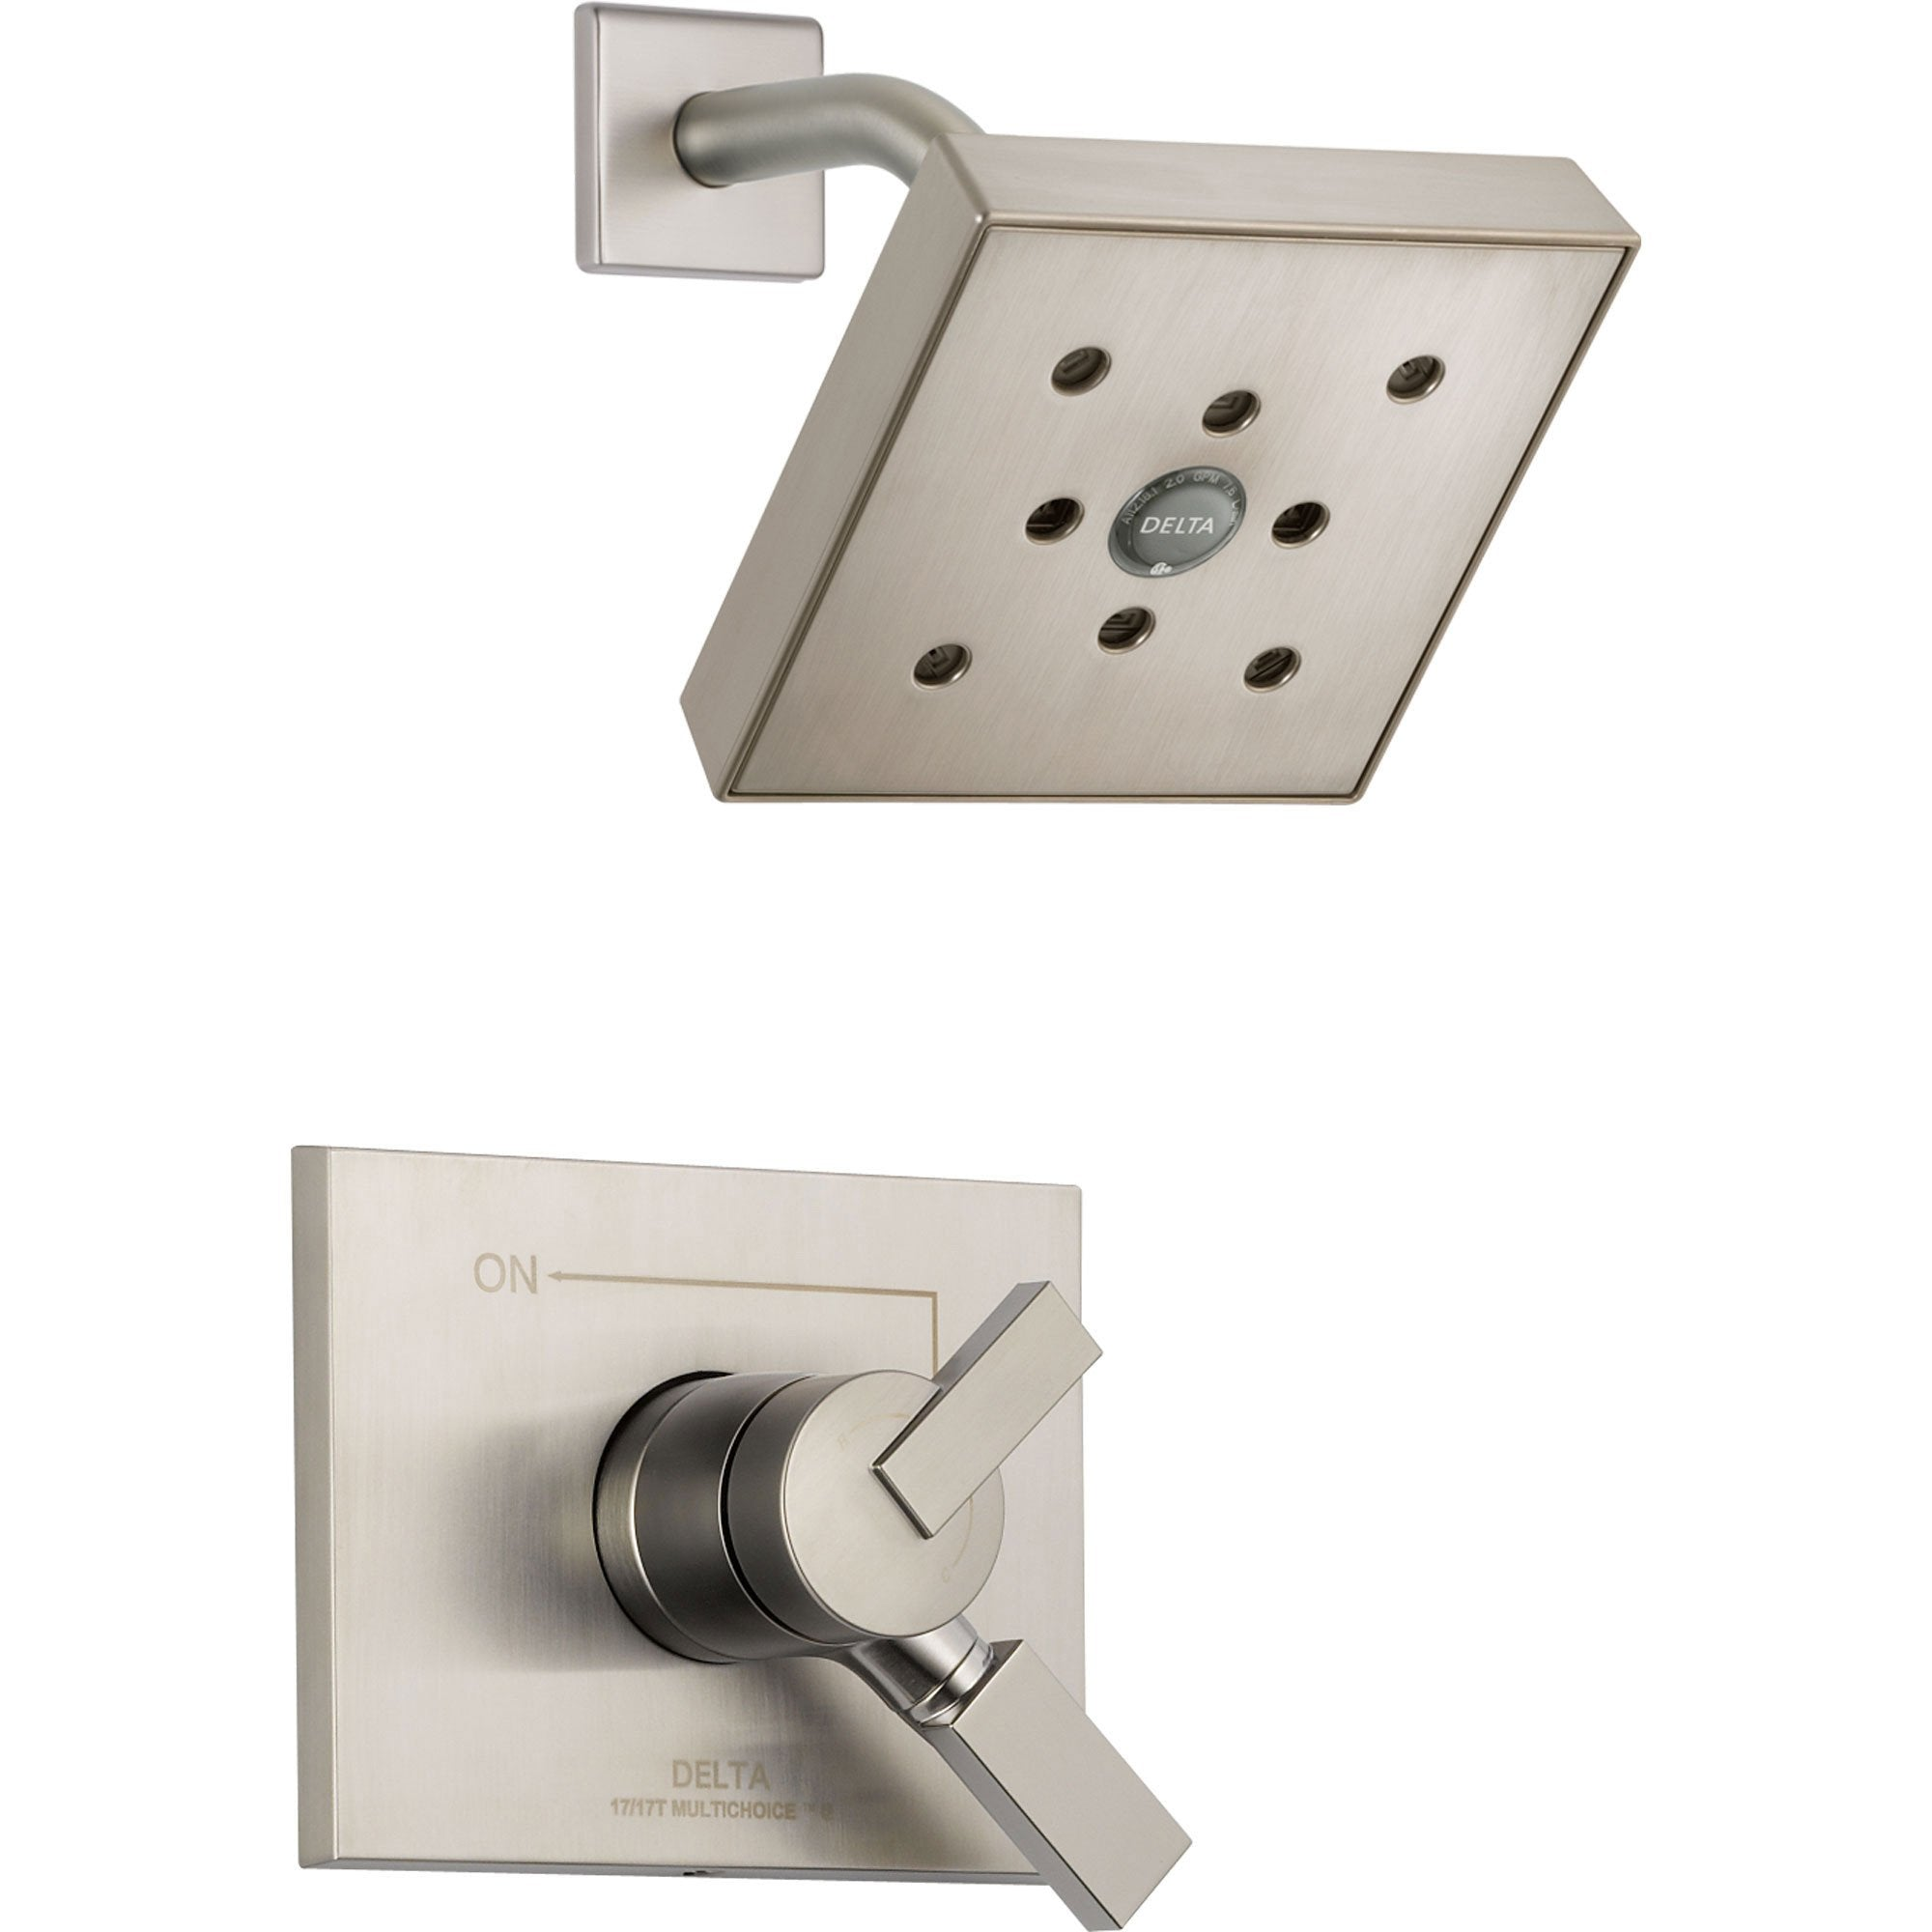 Delta Vero Stainless Steel Finish Temp/Volume Control Shower with Valve D693V